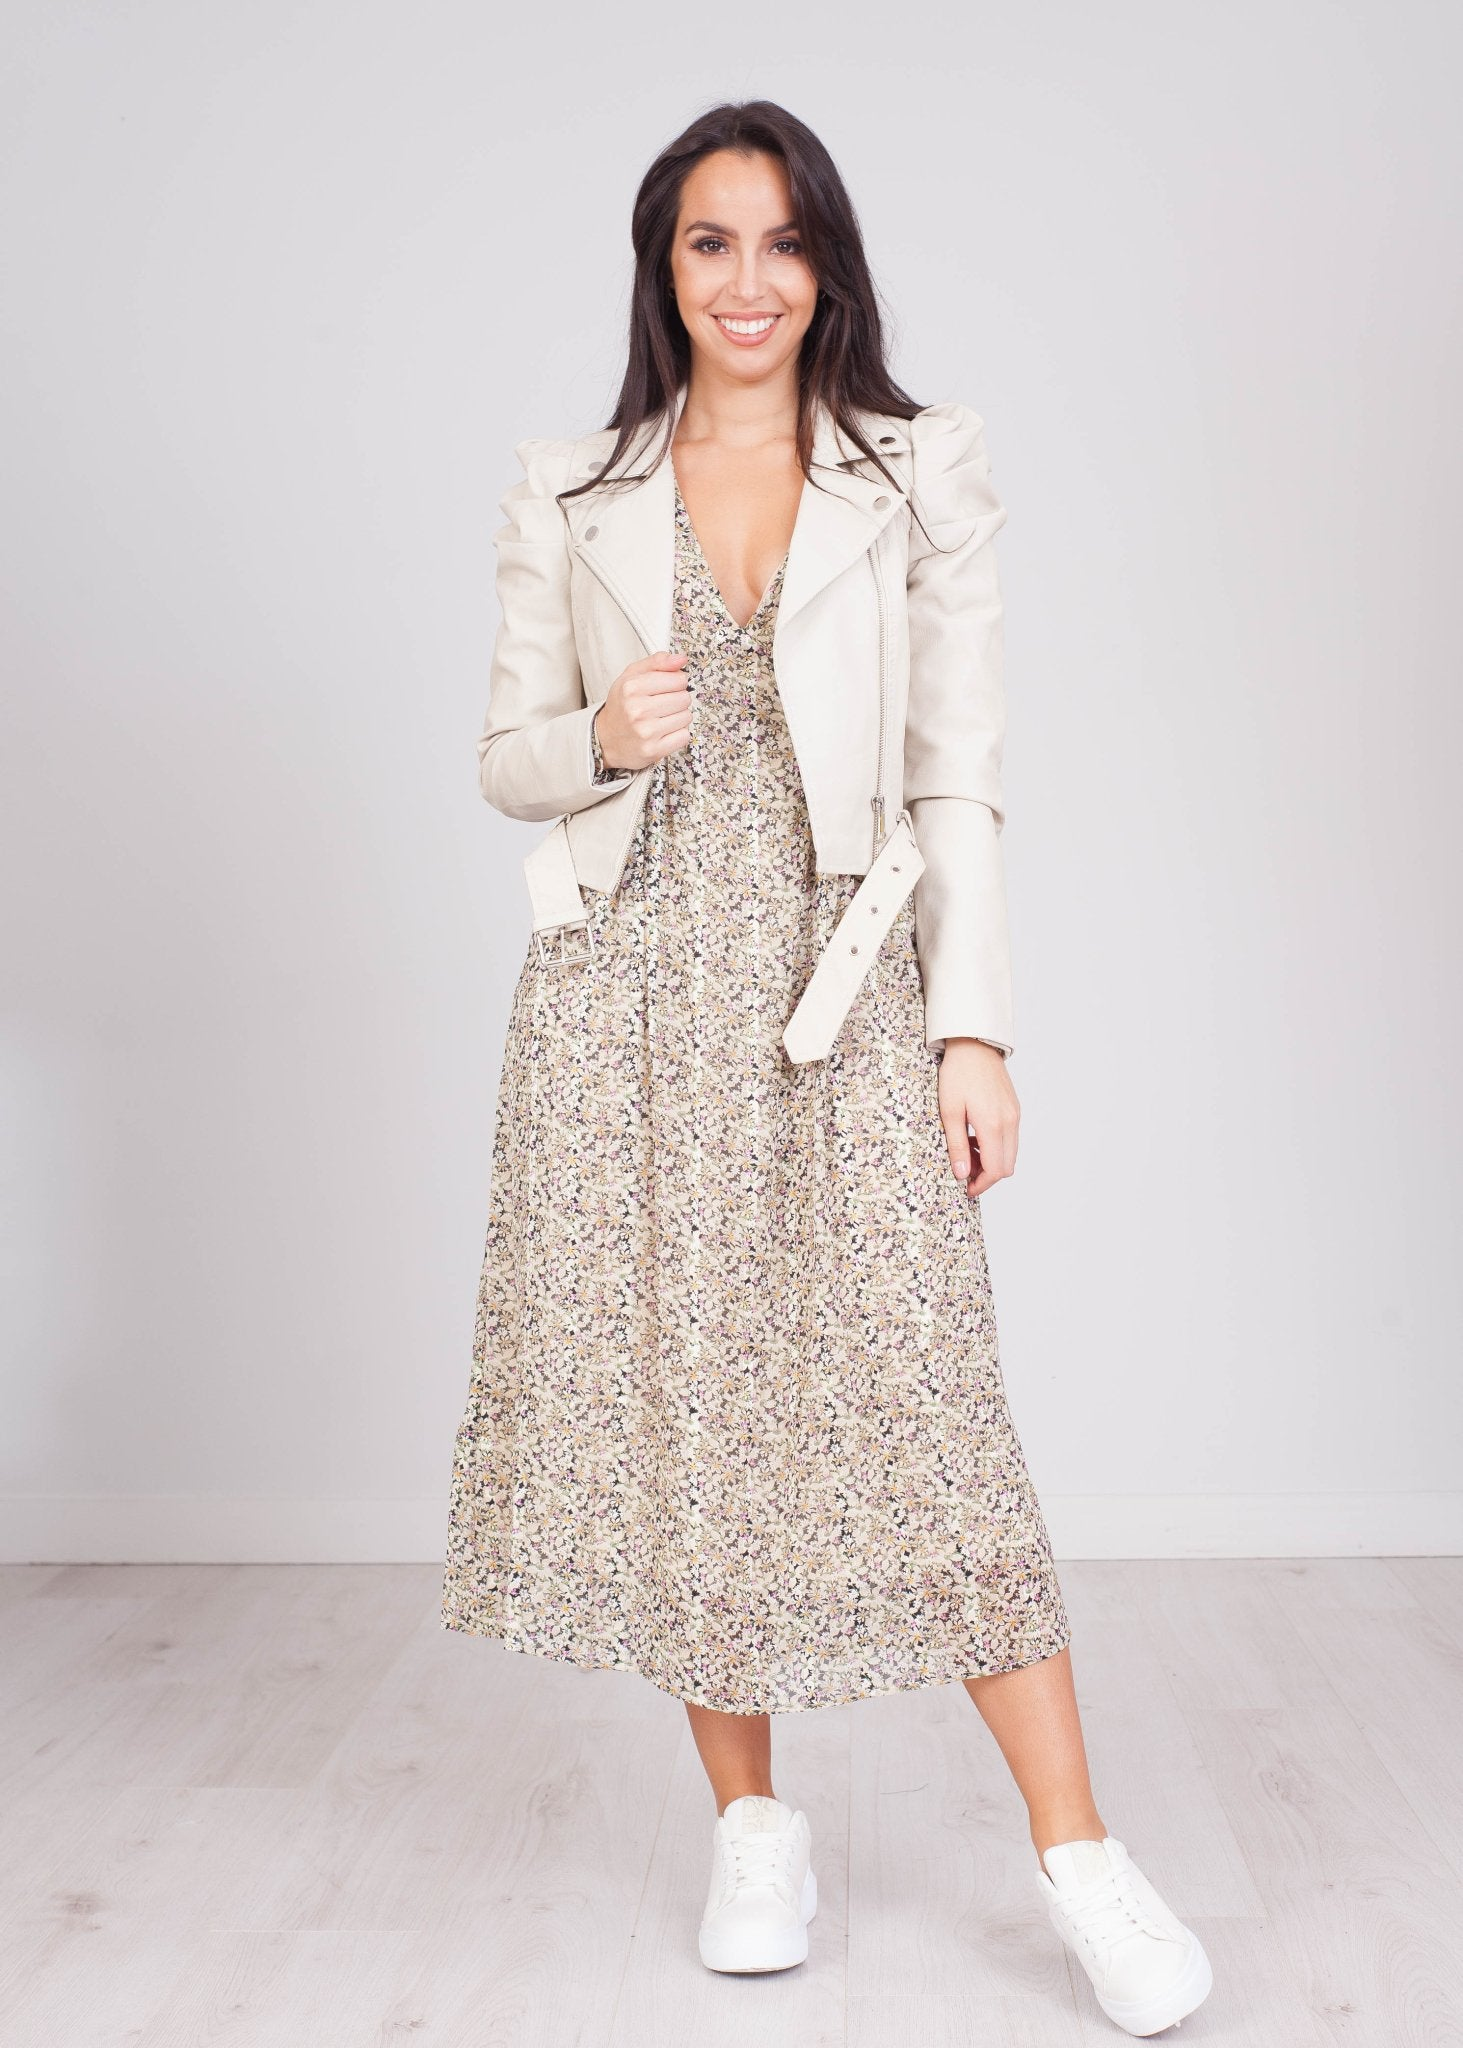 Priya Muted Floral Midi Dress - The Walk in Wardrobe